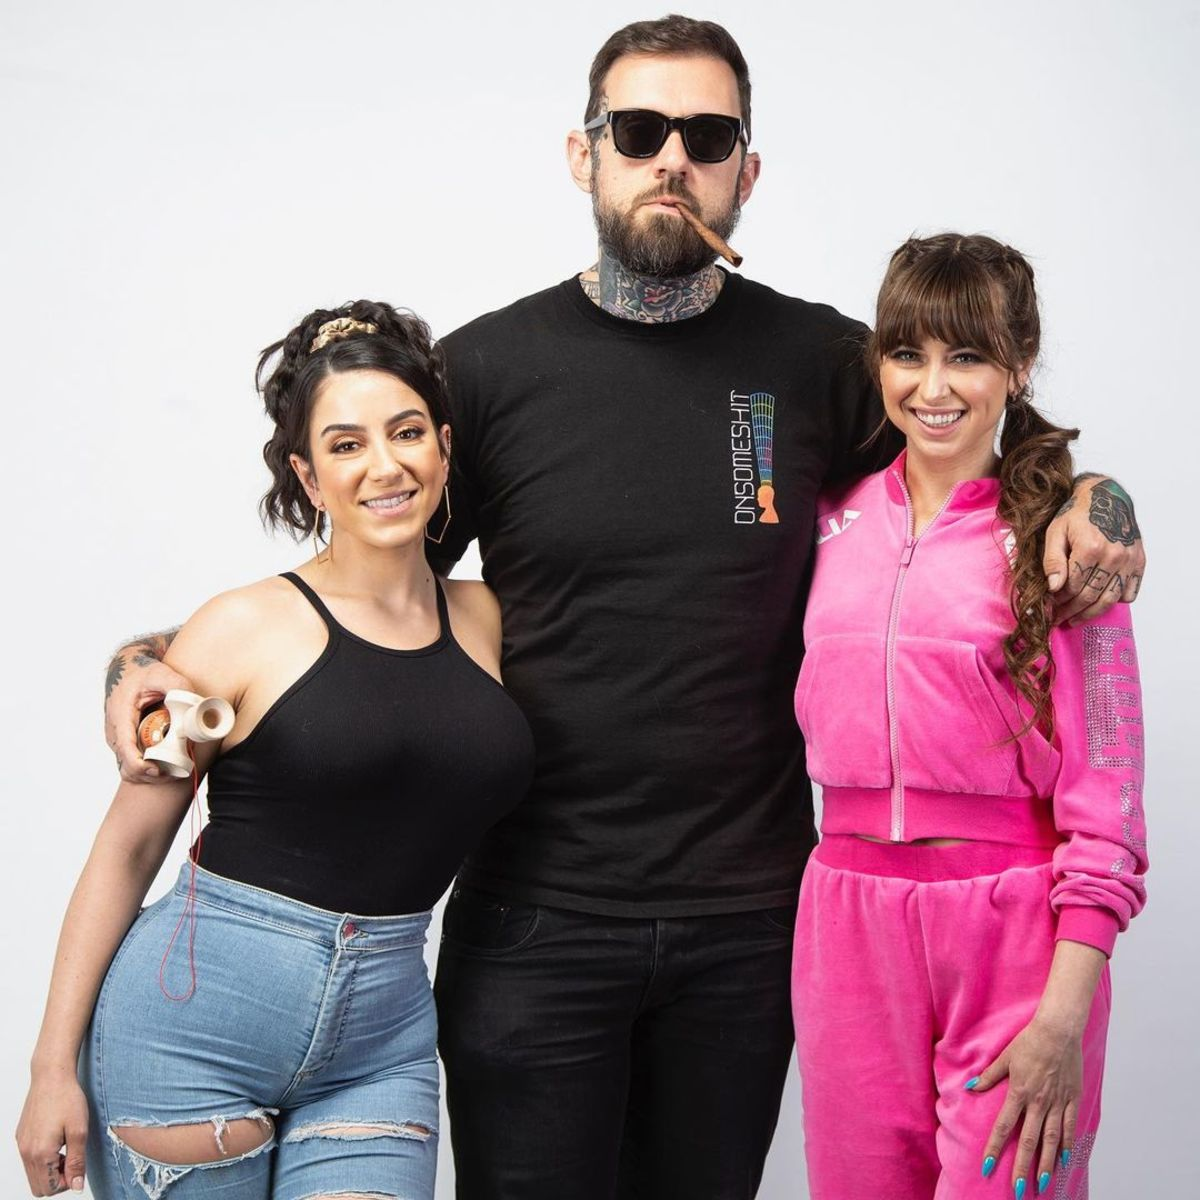 Grandmaison (center) pictured with his partner and top OnlyFans creator Lena Nersesian (left) and AVN award-winning performer Riley Reid (right). Photo via @adam22